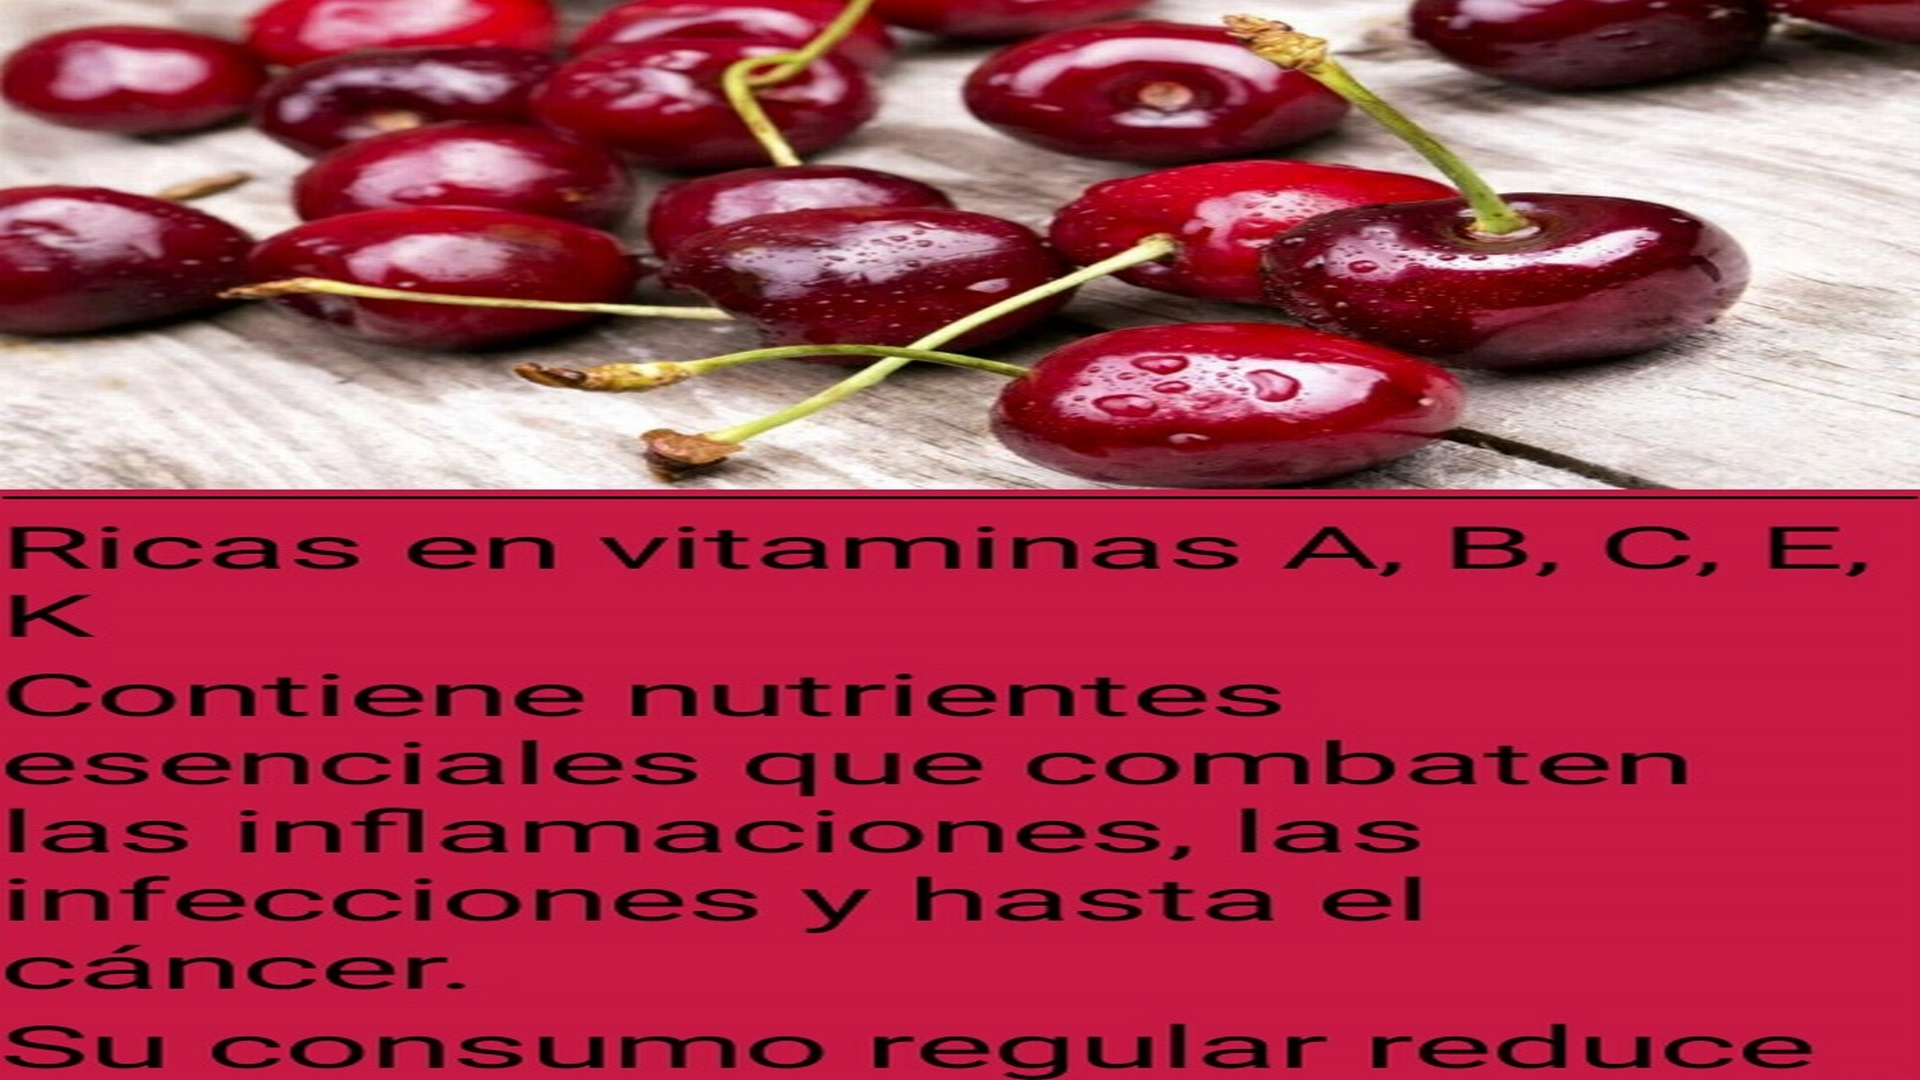 Amazon.com: Frutas Saludables: Appstore for Android